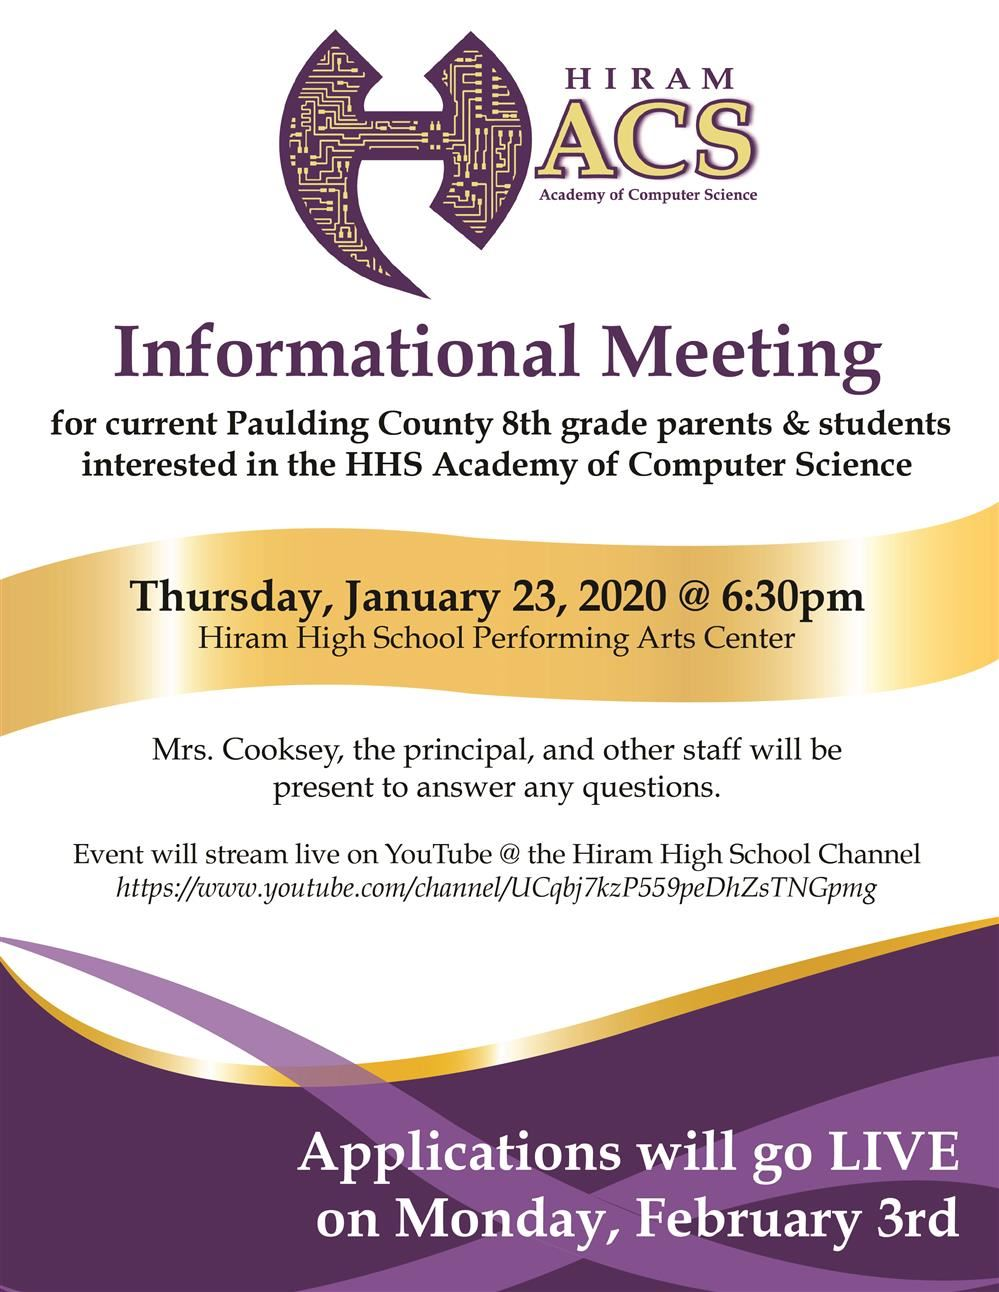 HHS Acad. of Computer Science Meeting Jan. 23